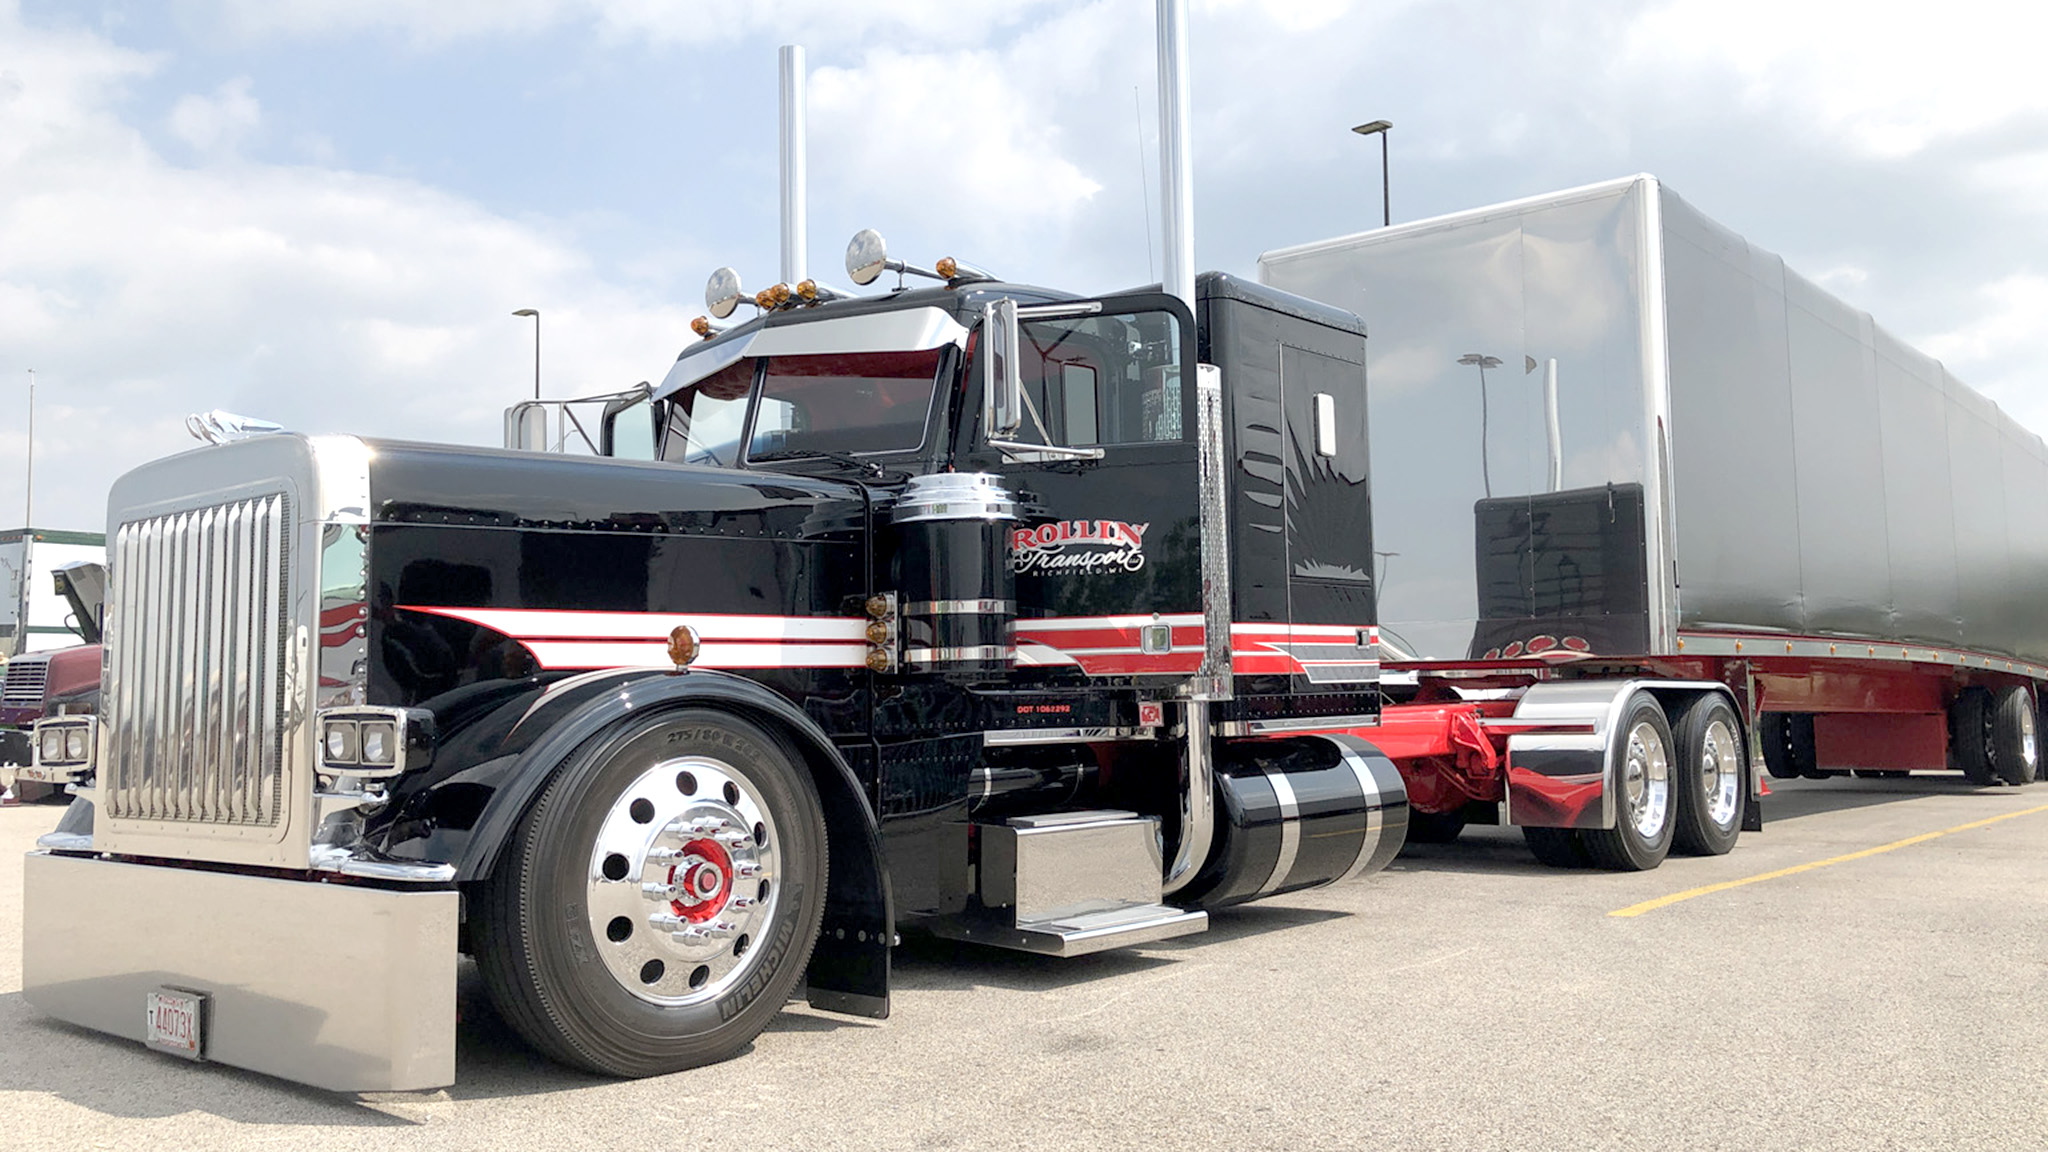 Shell Rotella SuperRigs 2021: The Best Big Rigs Get Their Due